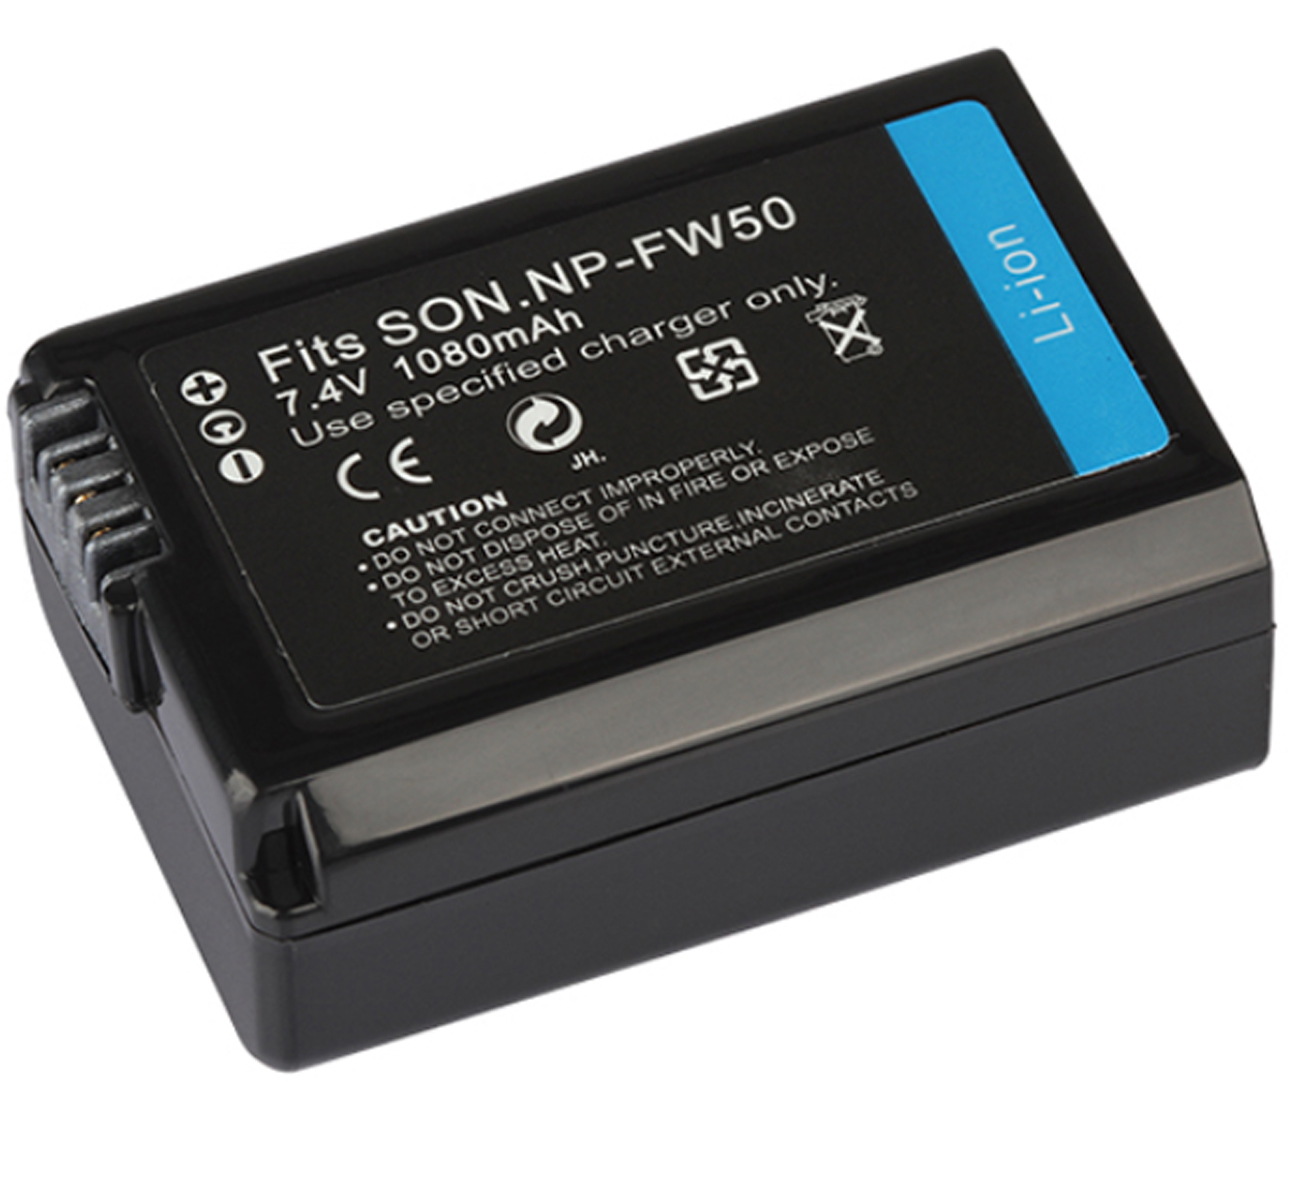 Battery Pack for <font><b>Sony</b></font> <font><b>Alpha</b></font> ILCE-<font><b>3000</b></font>, ILCE-3500, ILCE-5000, ILCE-5100, ILCE-6000, ILCE-6300,ILCE-6500 Mirrorless Digital Camera image